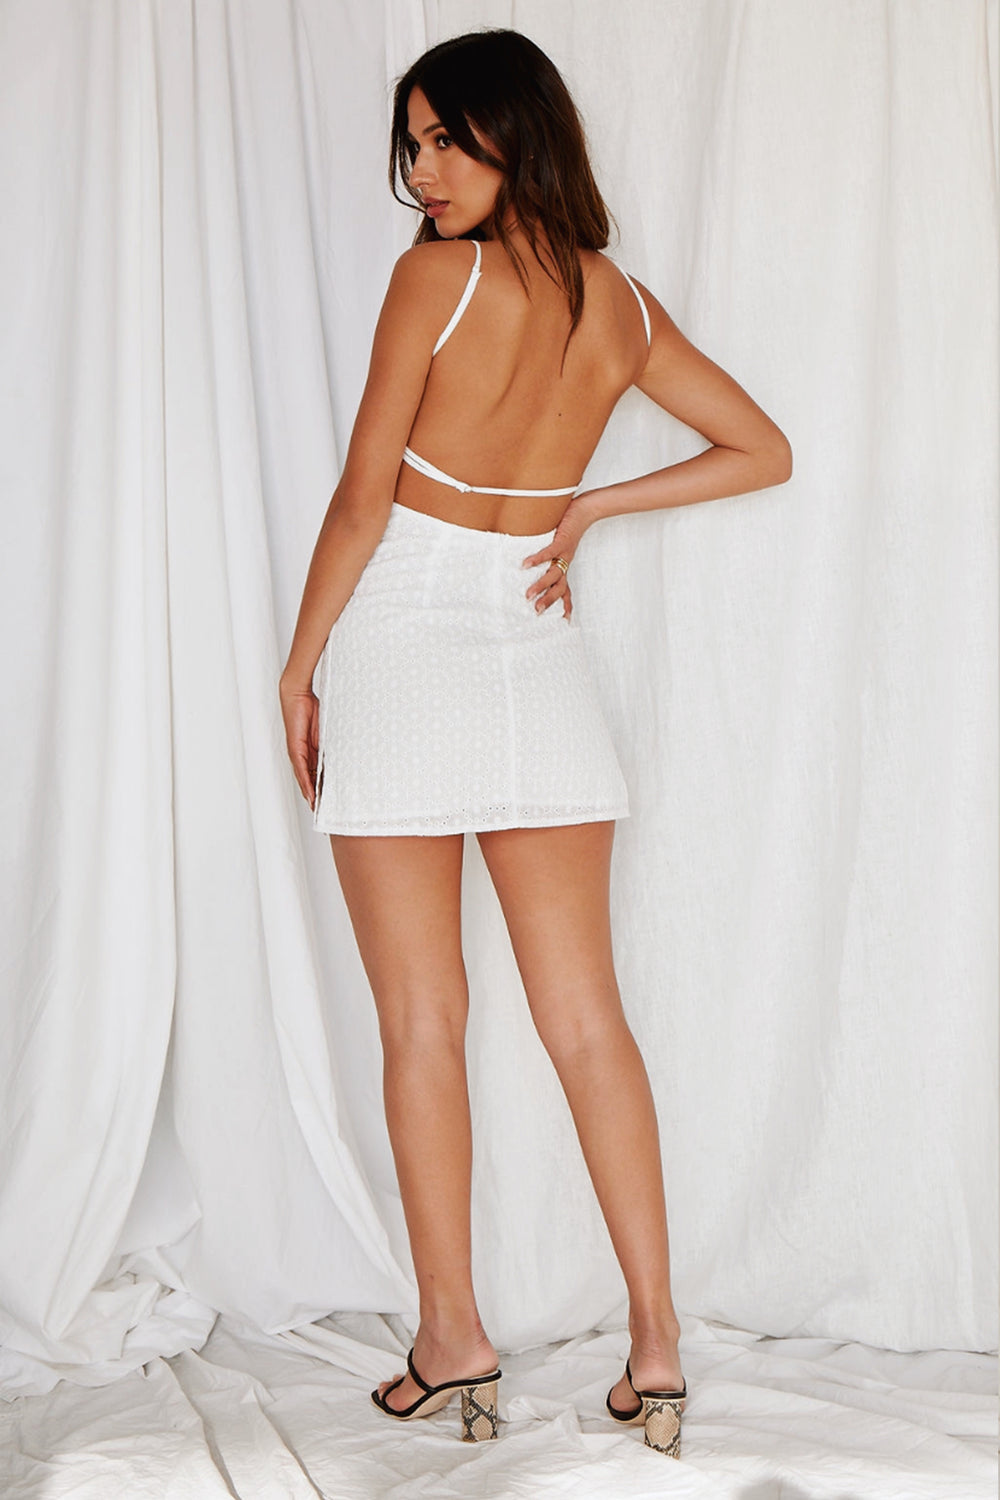 Sevilla White Eyelet Mini Dress